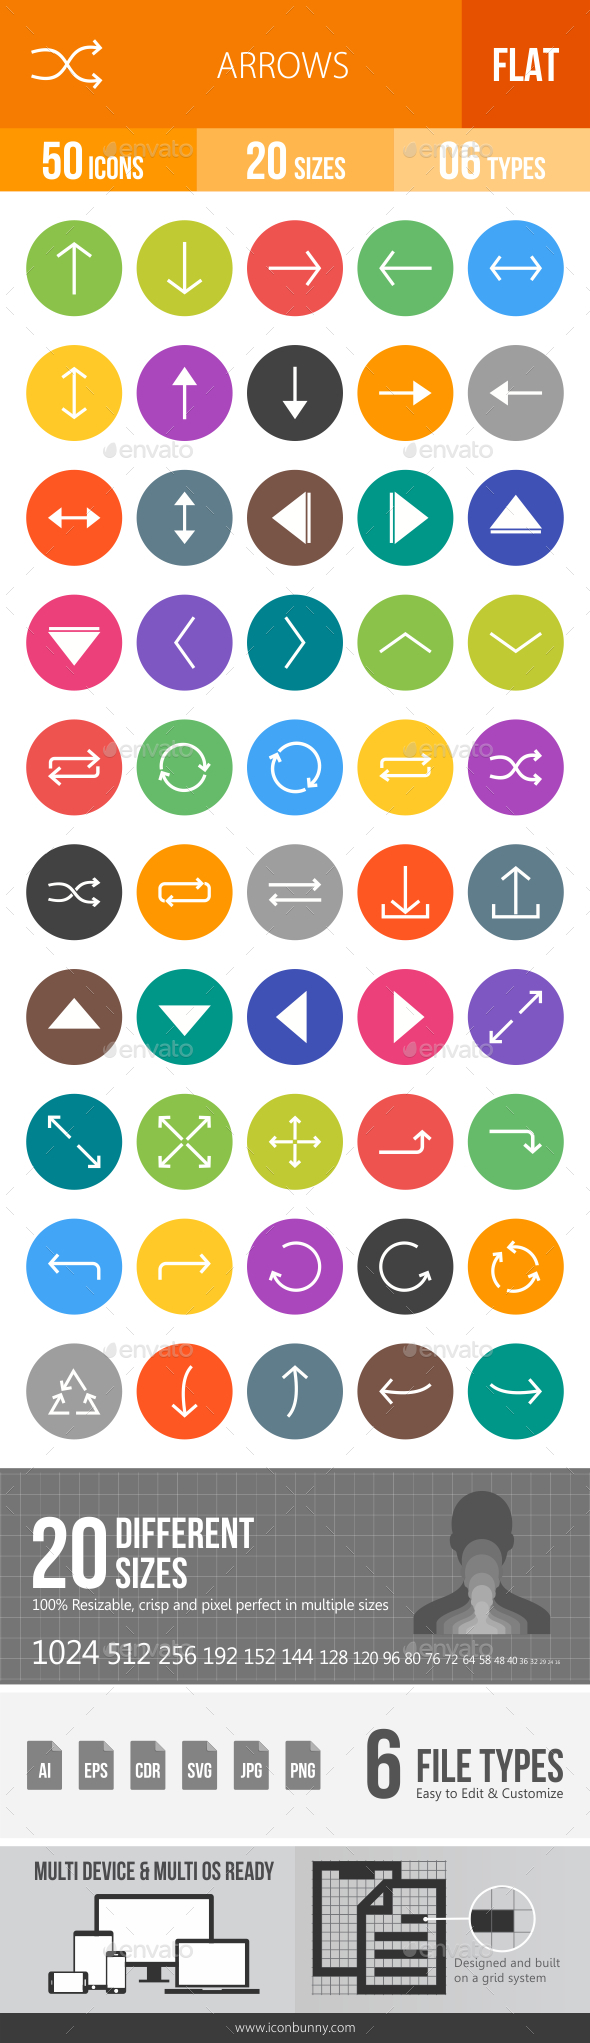 Arrows Flat Round Icons - Icons